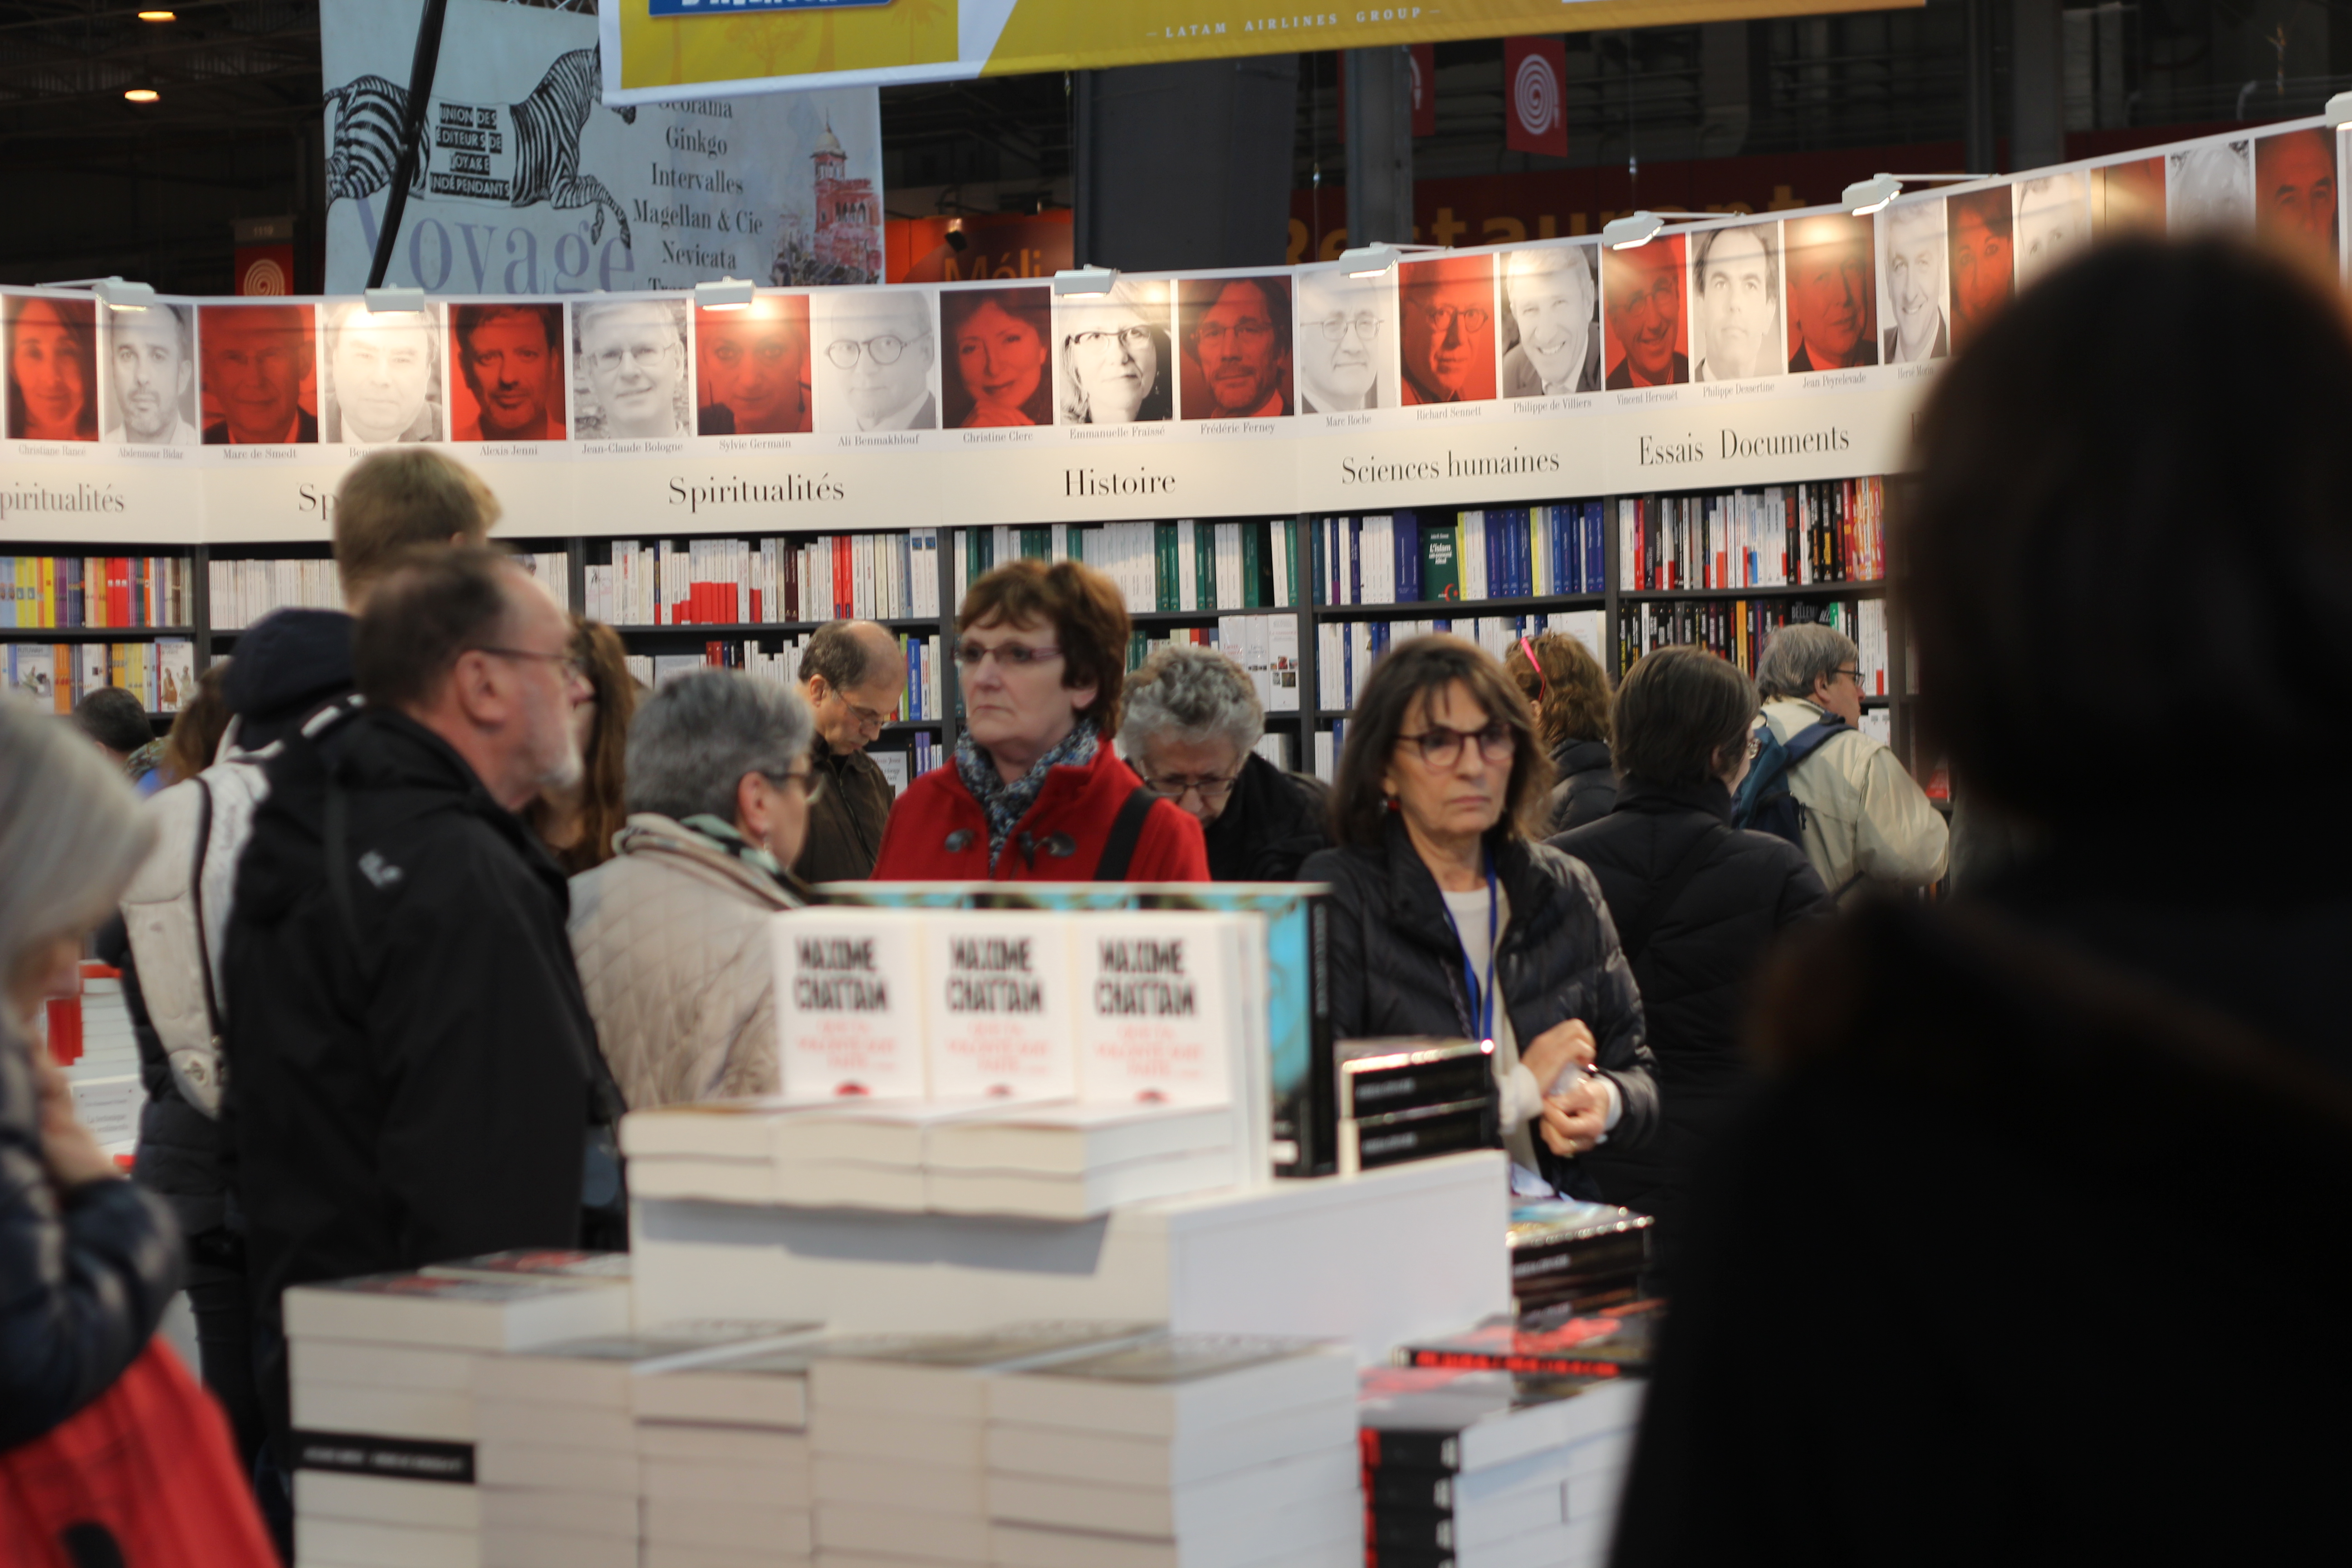 Salon Du Livre Paris File Albin Michel Salon Du Livre De Paris 2015 Jpg